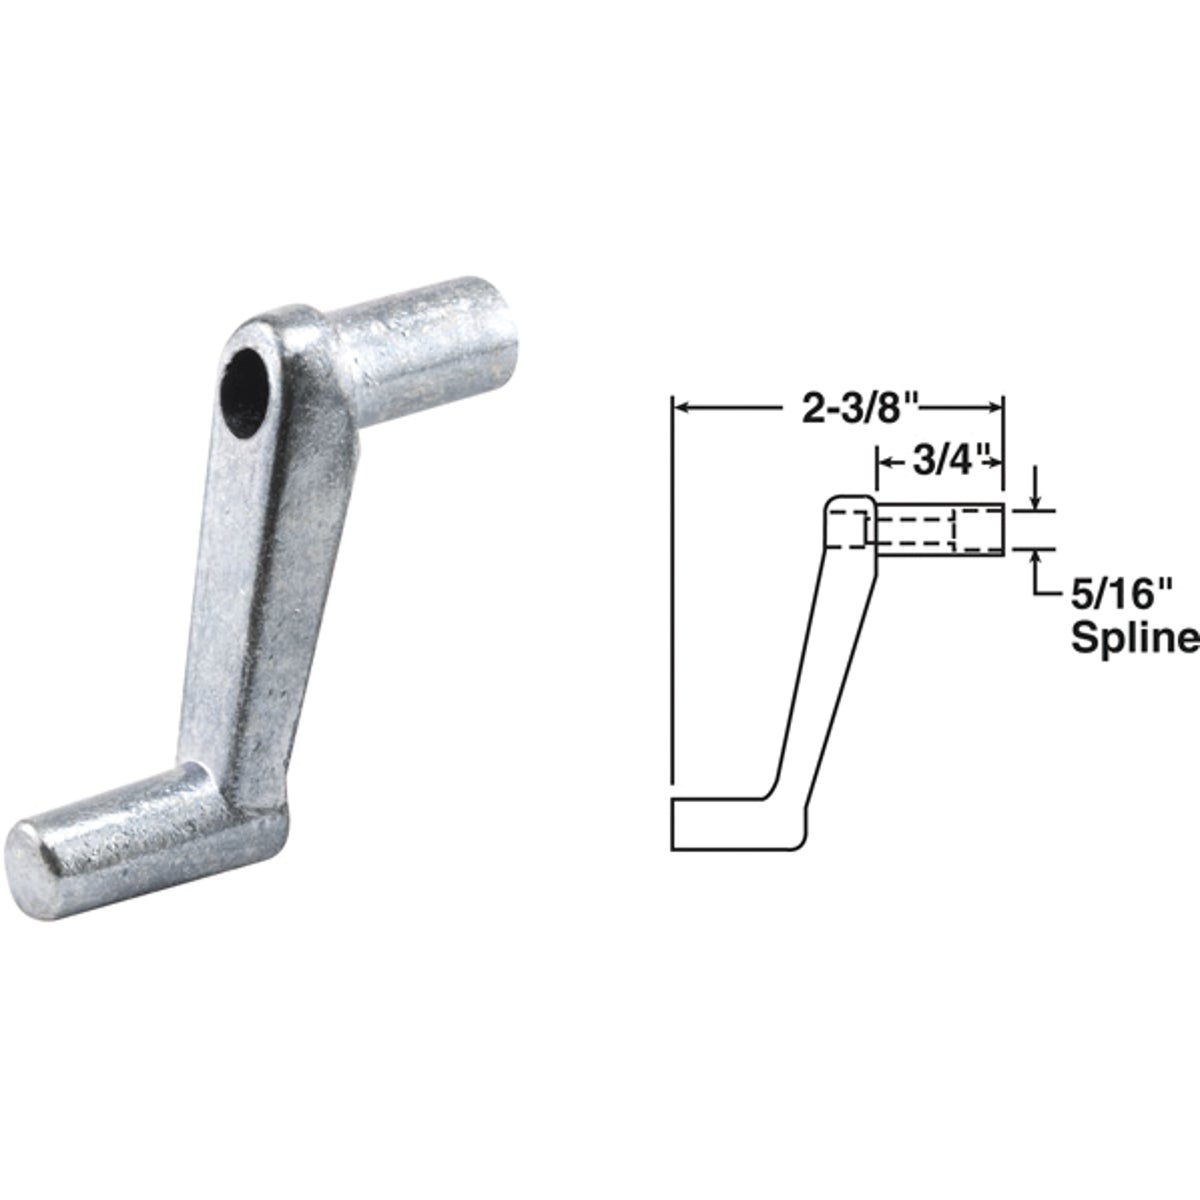 "3/4"" CASMNT CRANK HANDLE - 22254 by Prime Line Products"